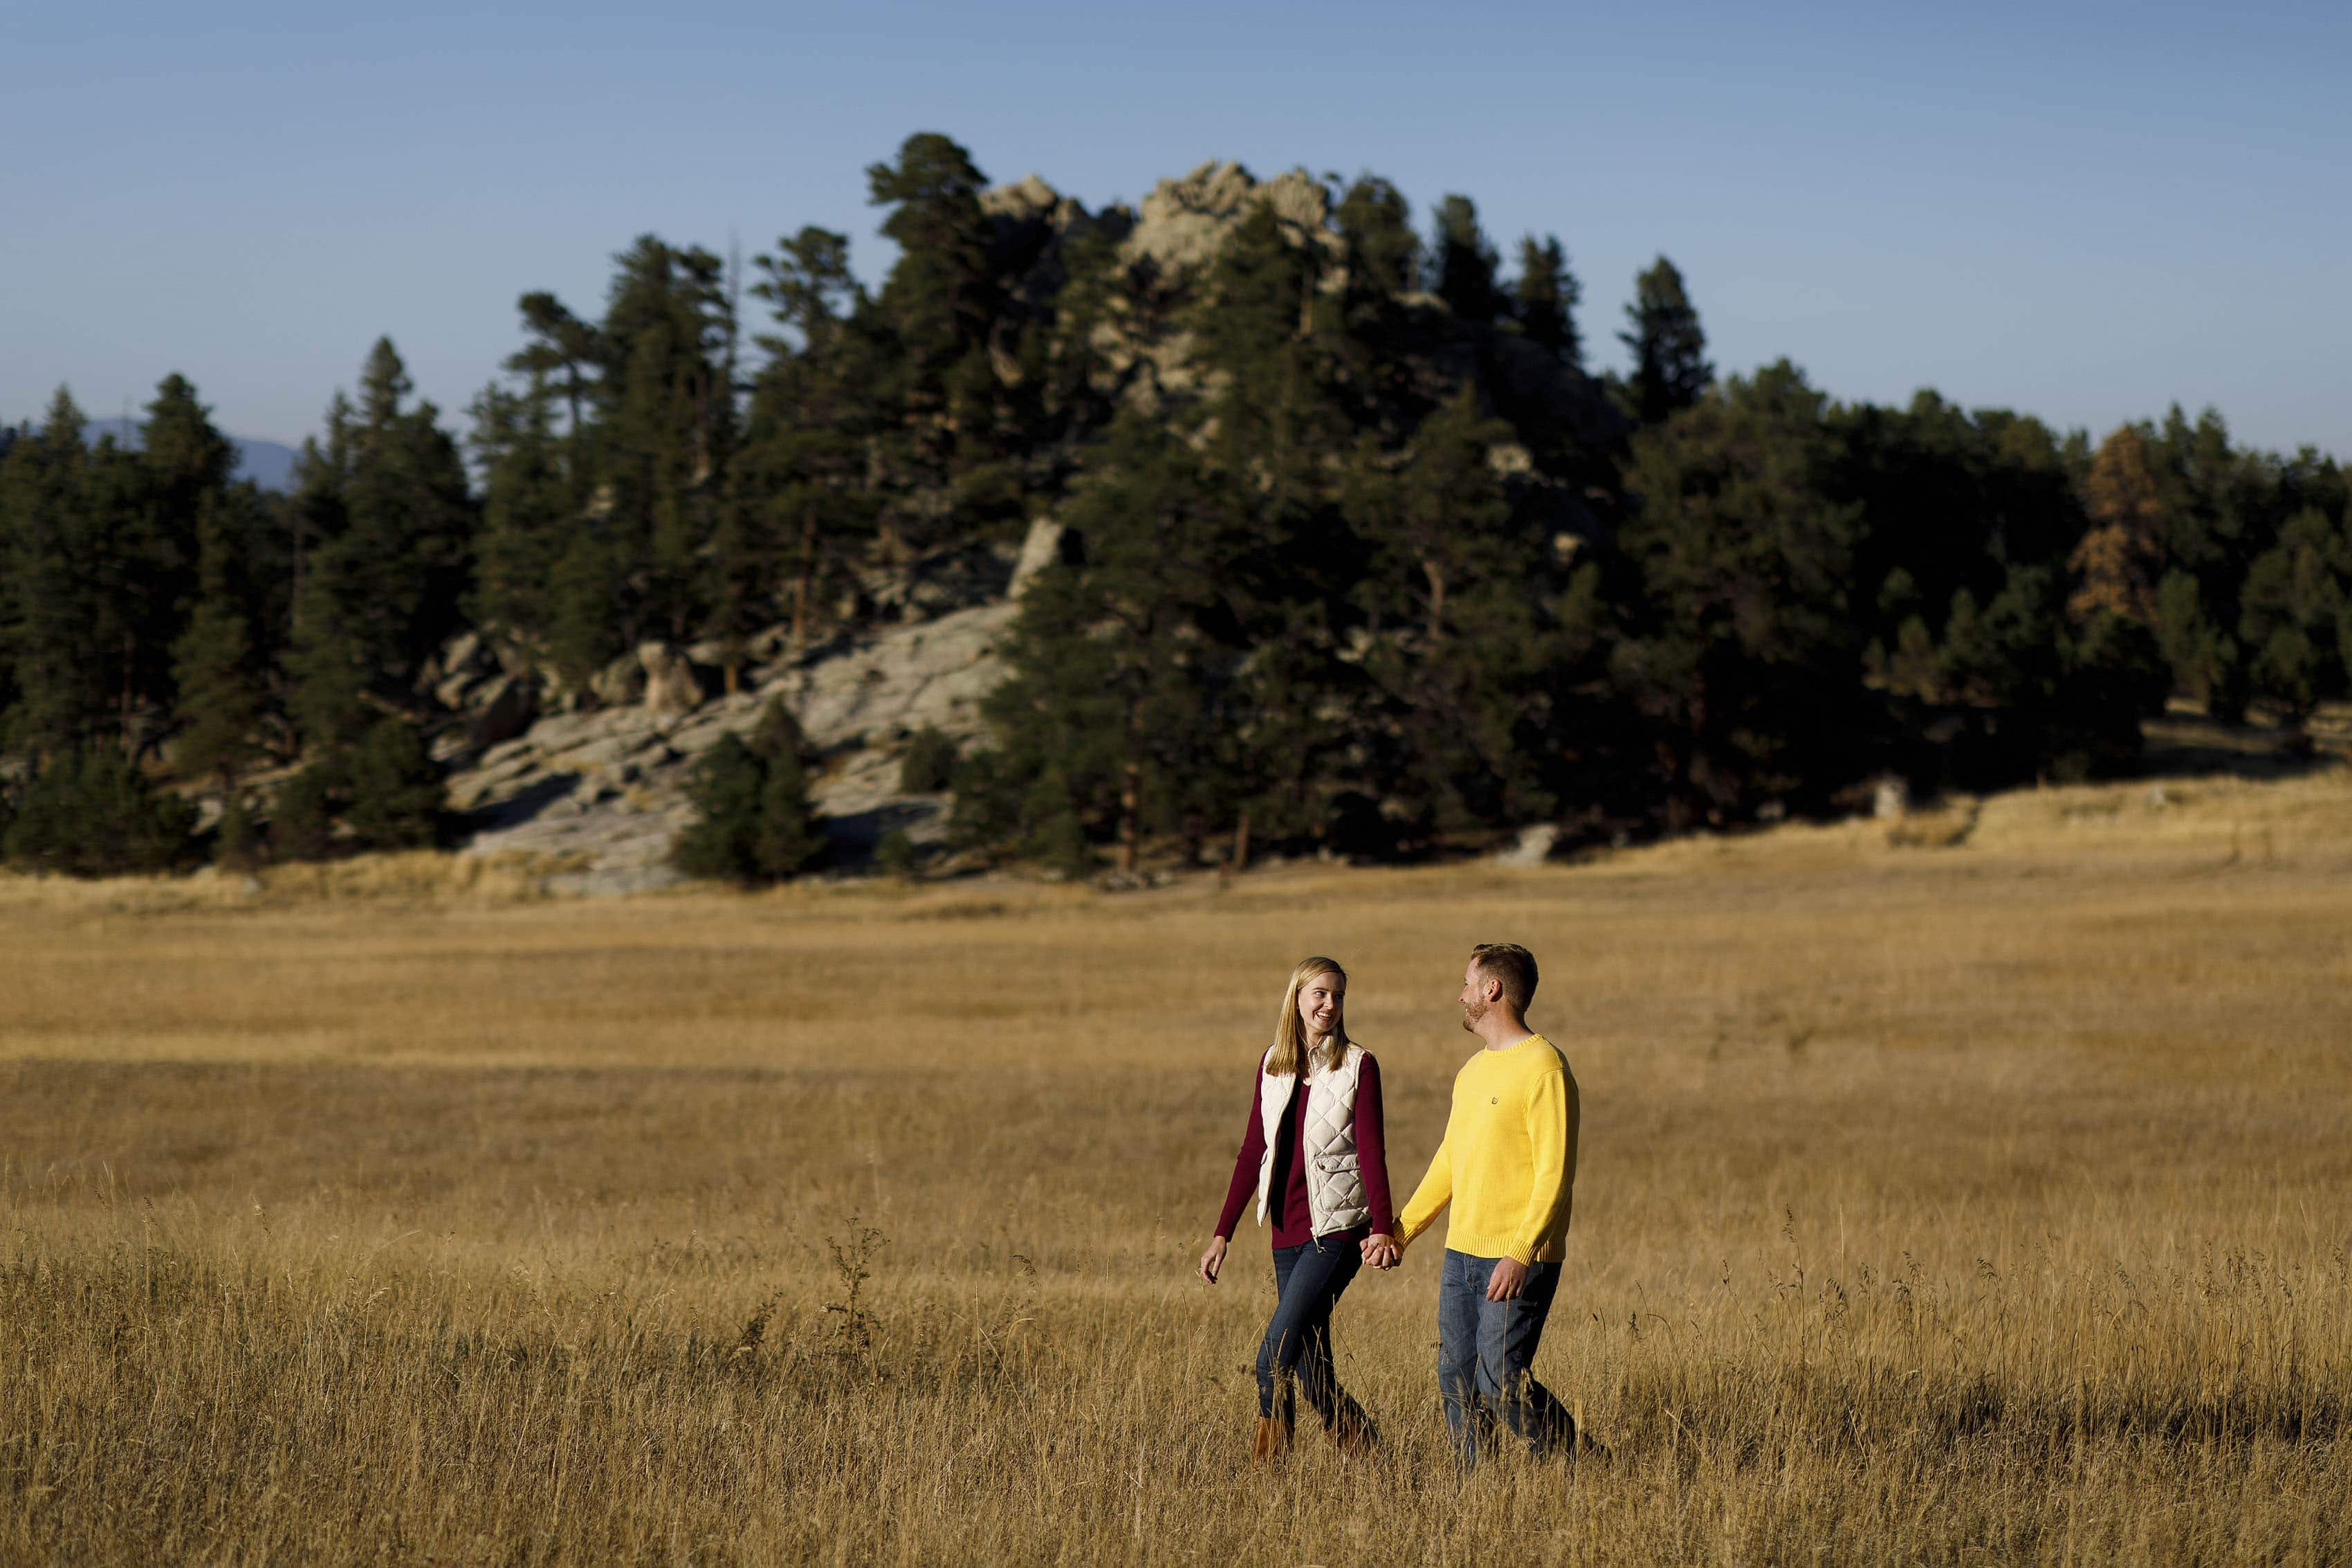 A couple walks together in the long grass at Alderfer Three Sister's Park in Evergreen, Colorado